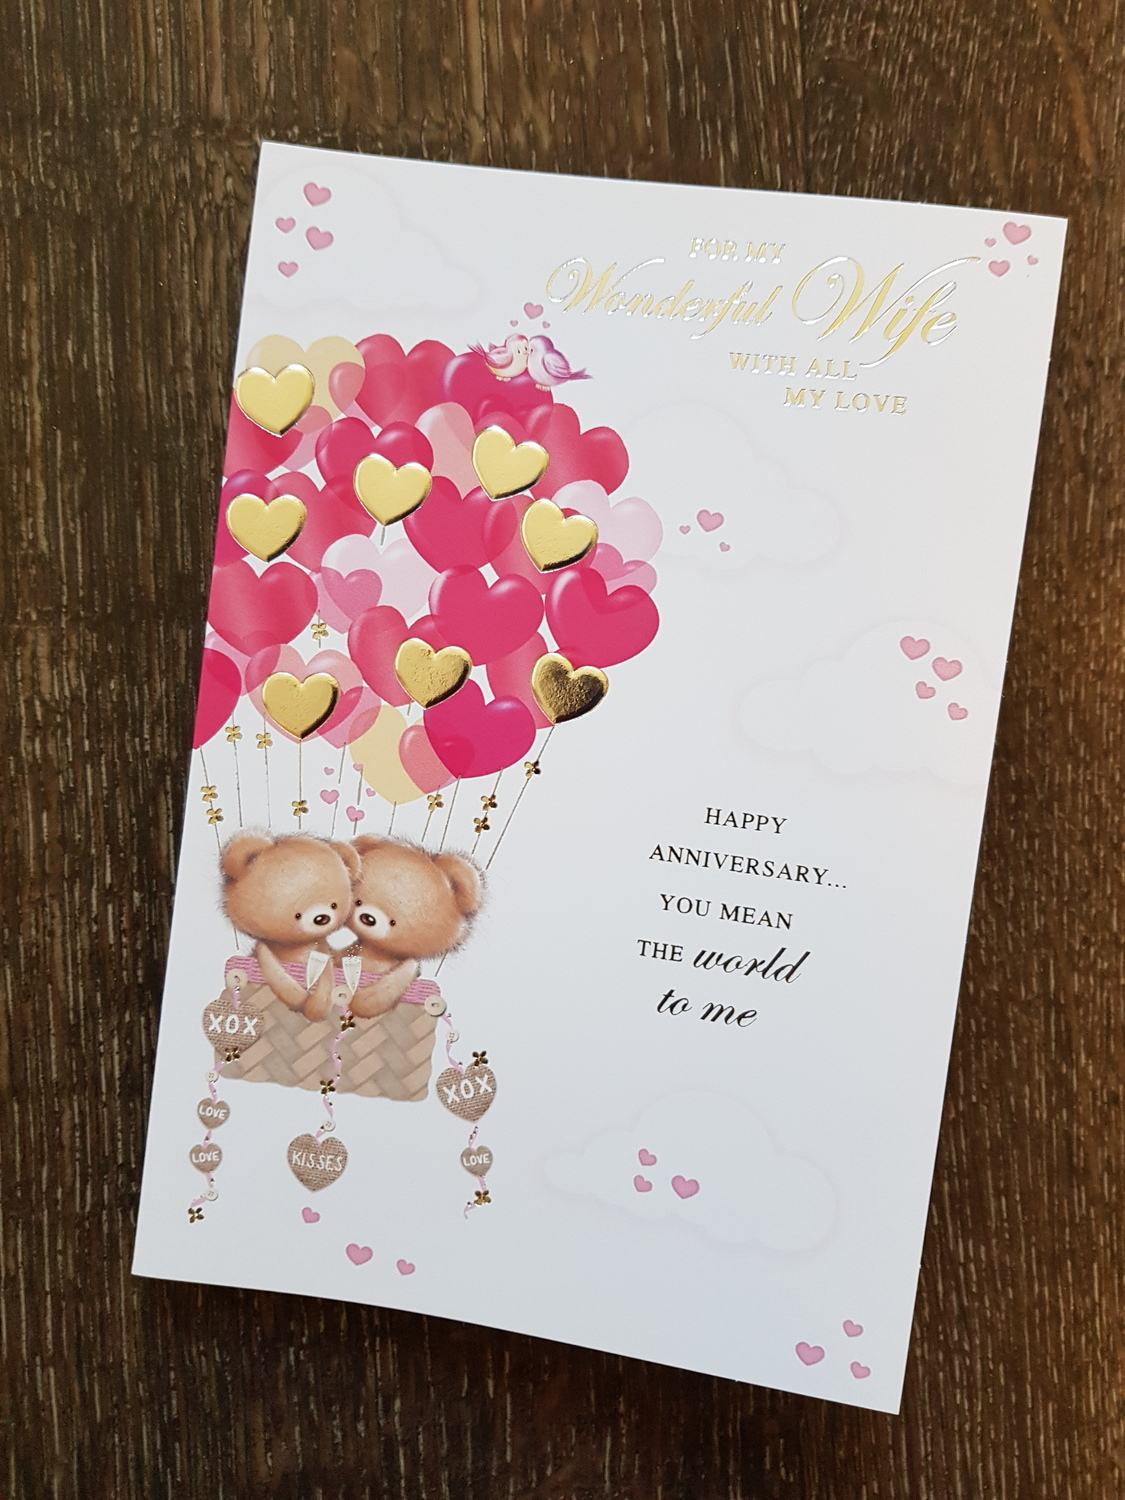 Wife Teddys Pink Hearts Anniversary Card Remember That Card